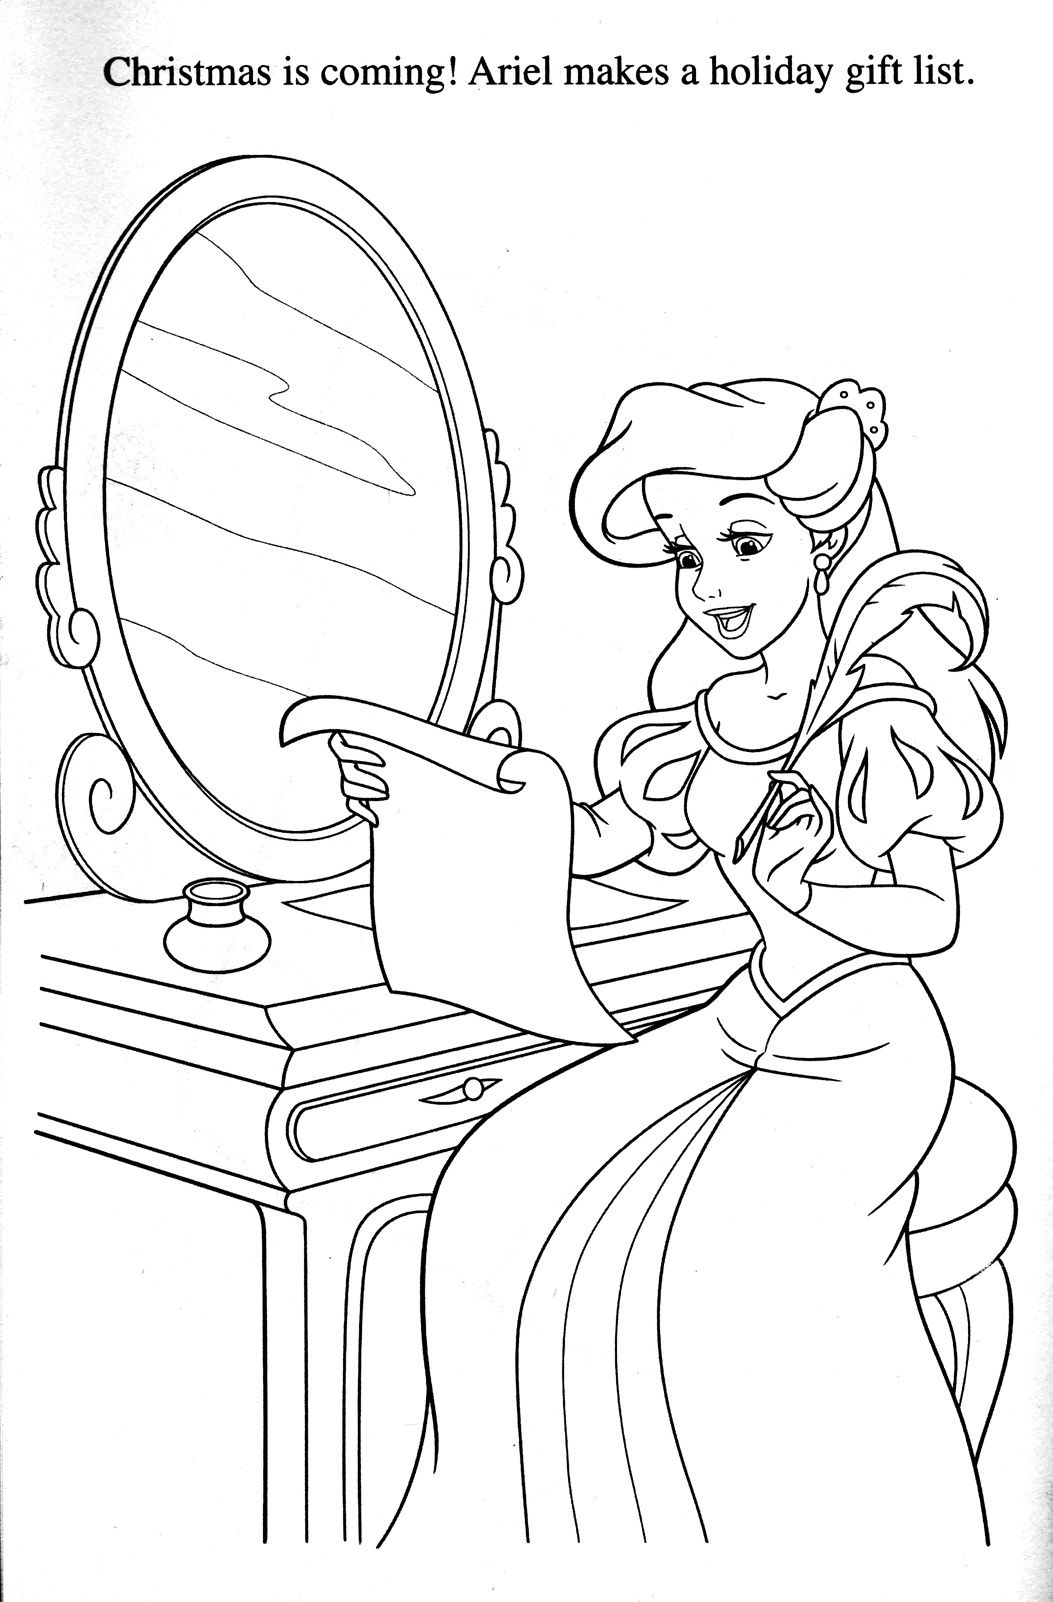 Disney Coloring Pages : Photo | Disney Coloring Pages | Pinterest ...